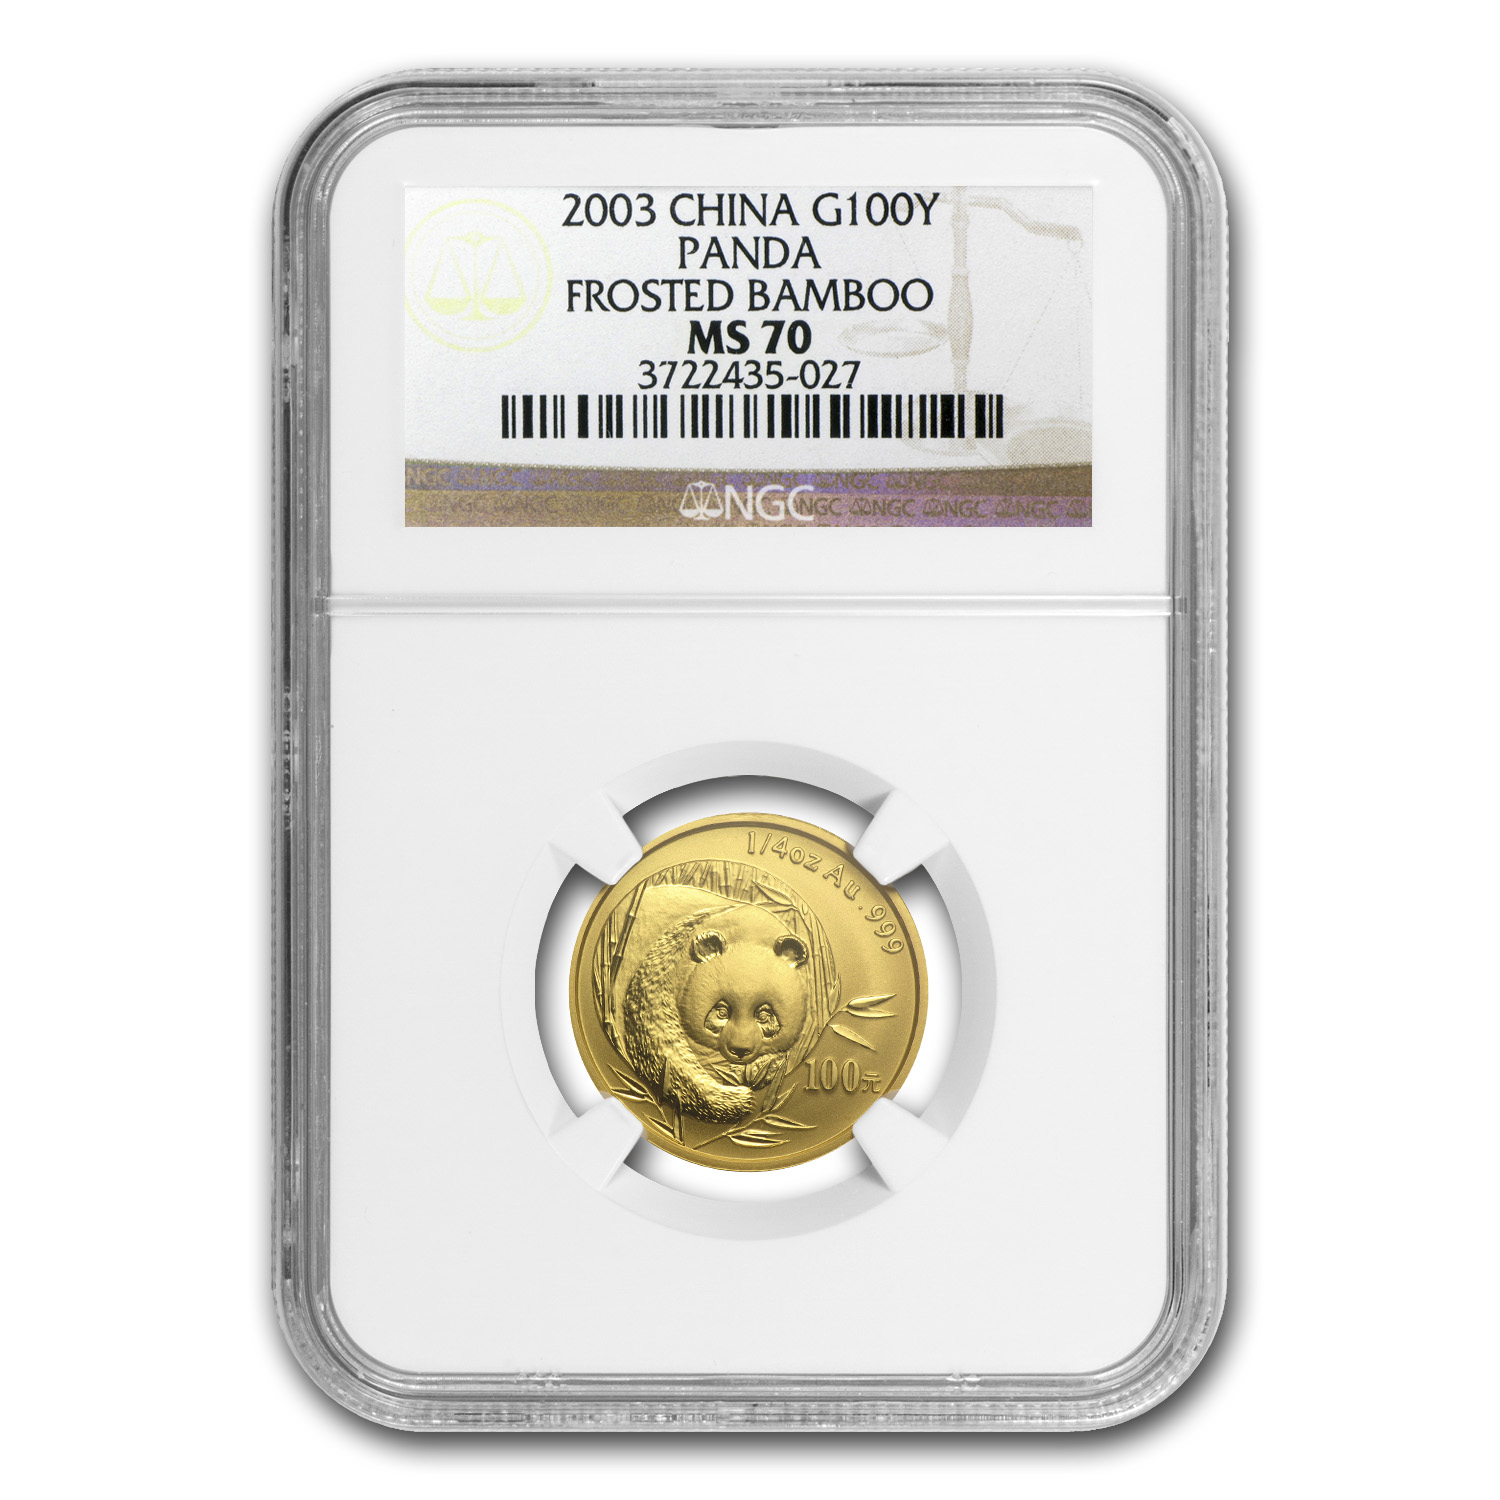 2003 China 1/4 oz Gold Panda Frosted Bamboo MS-70 NGC